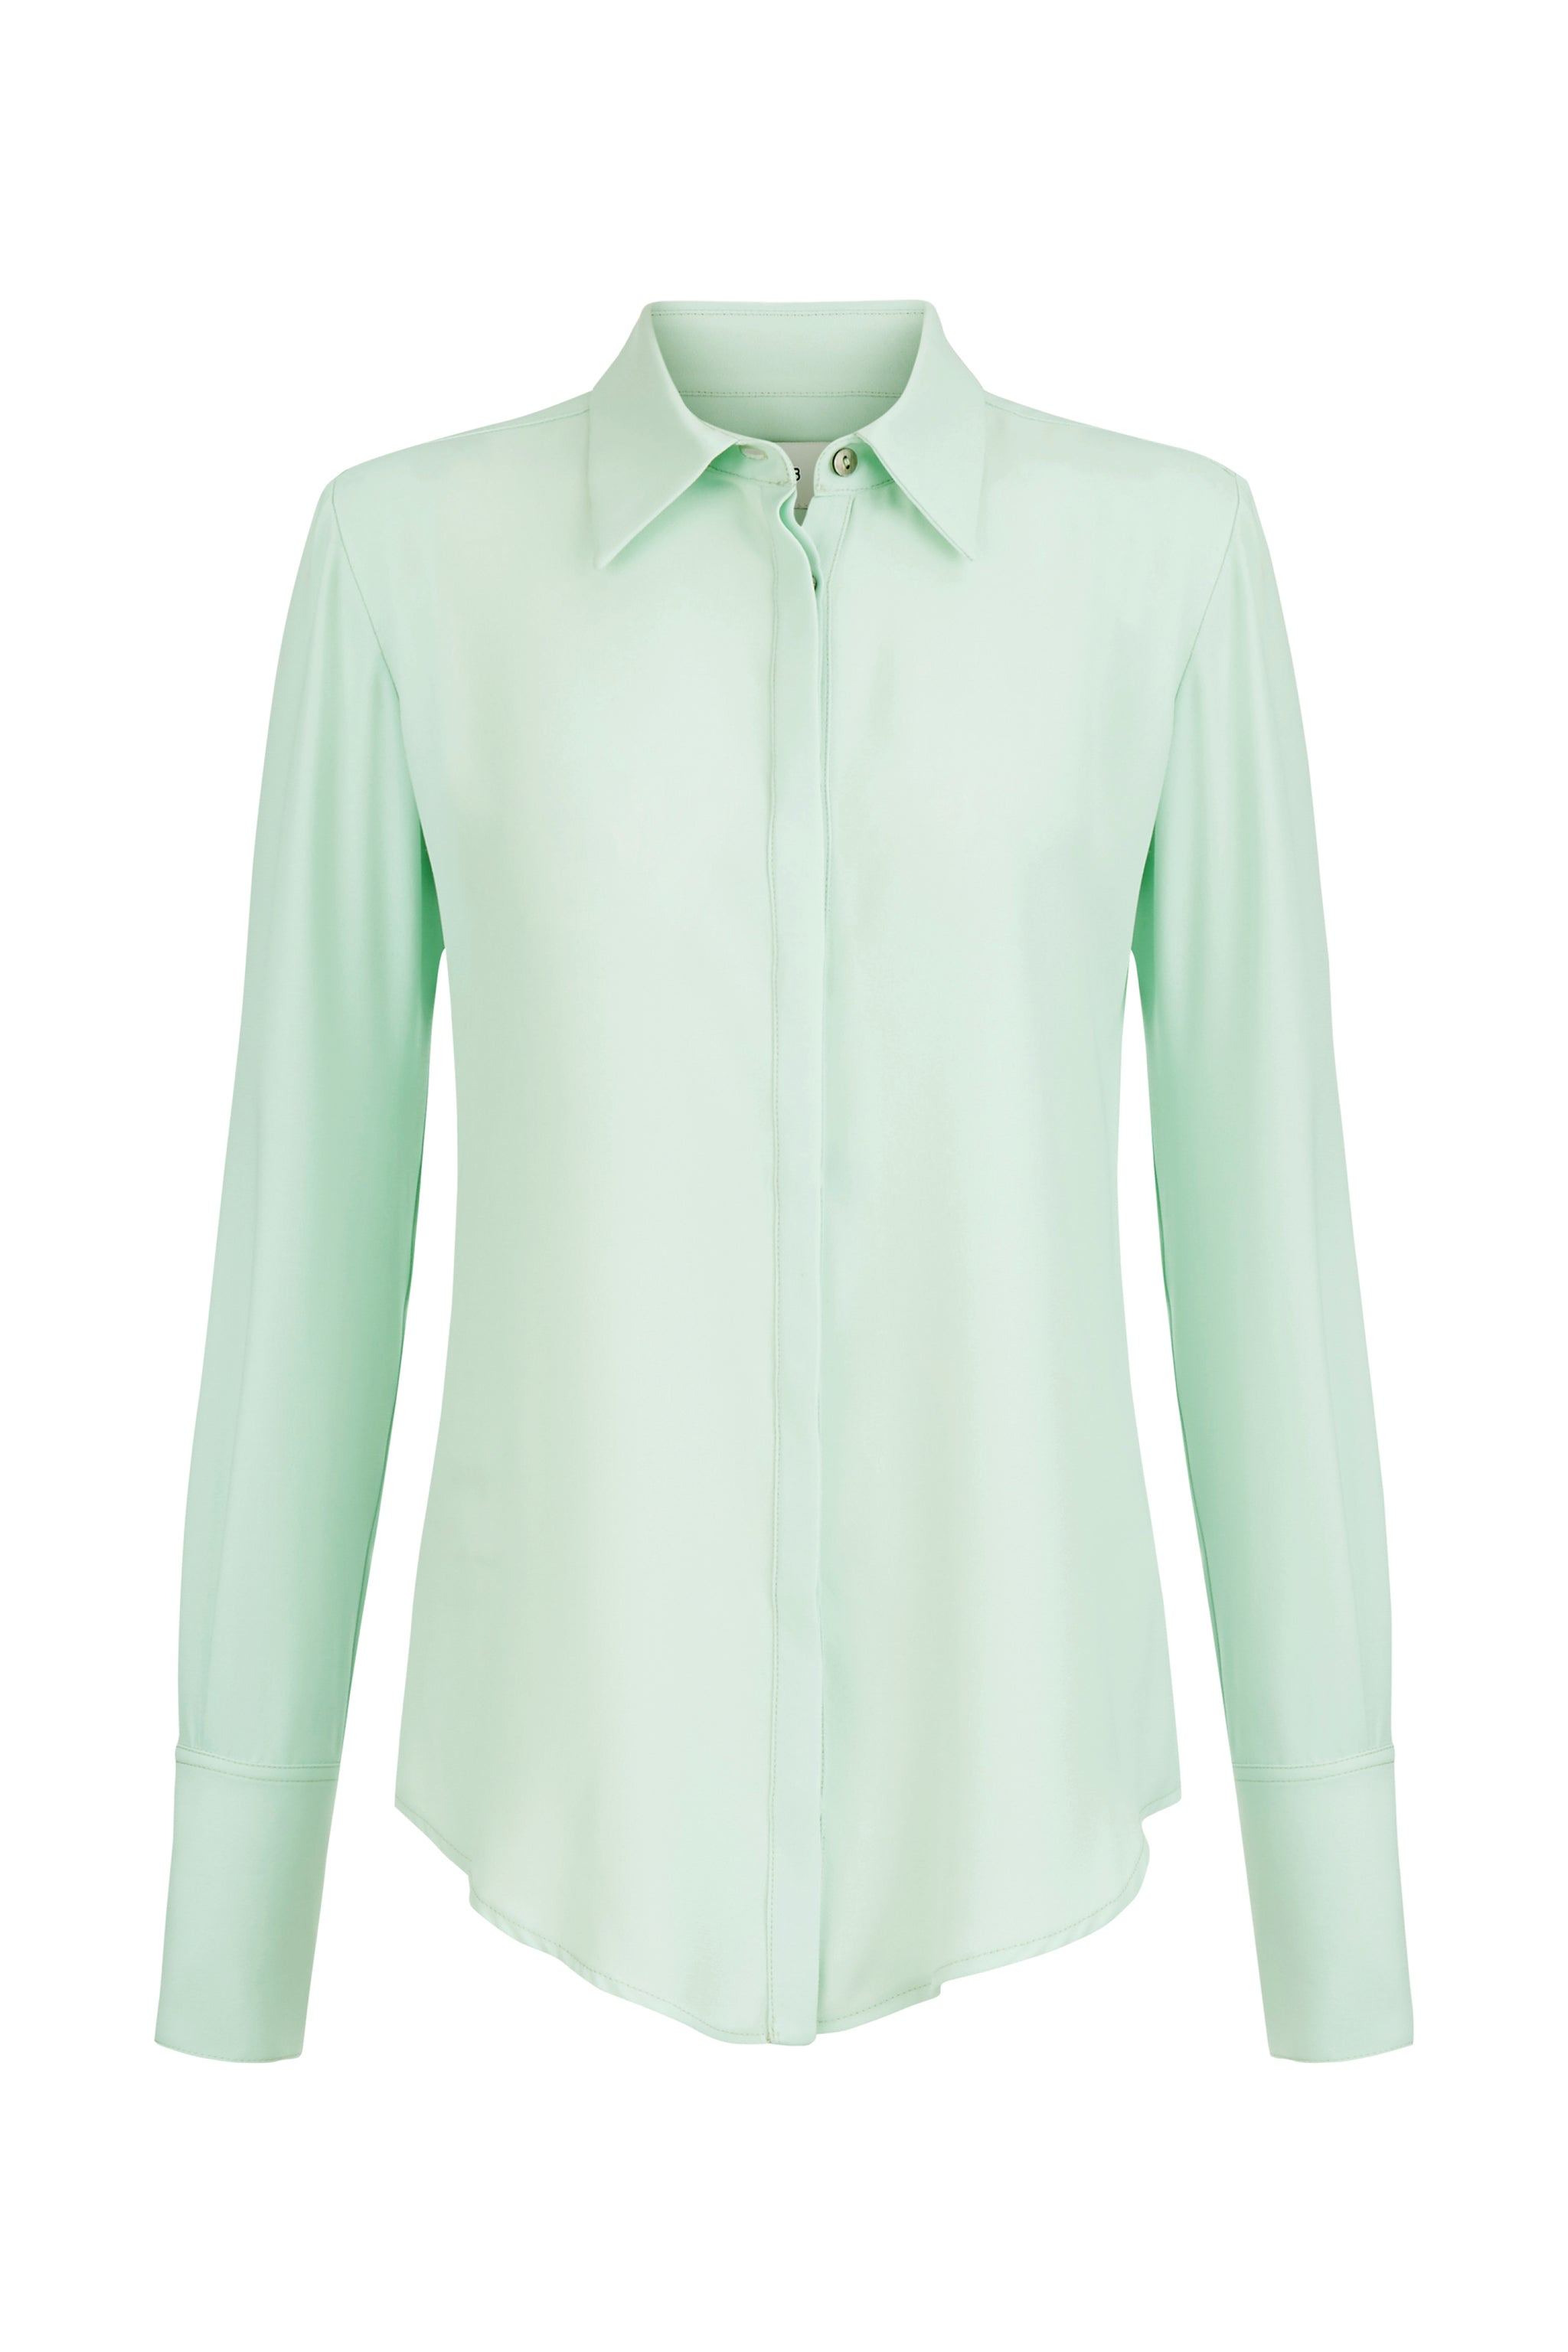 Beaulieu Pistachio Shirt